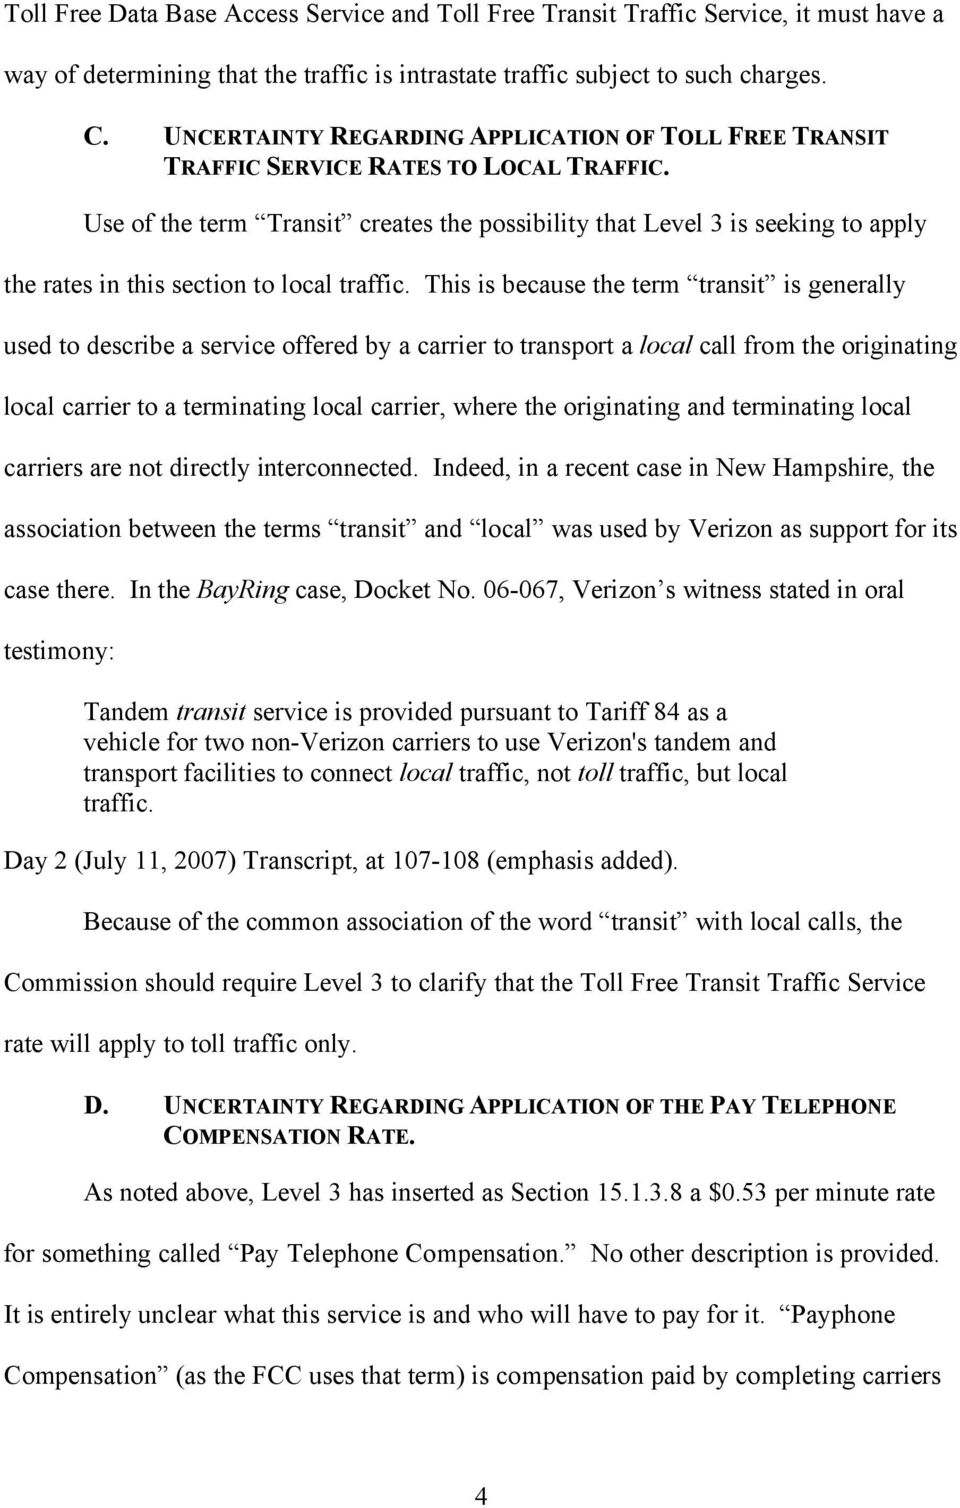 Use of the term Transit creates the possibility that Level 3 is seeking to apply the rates in this section to local traffic.